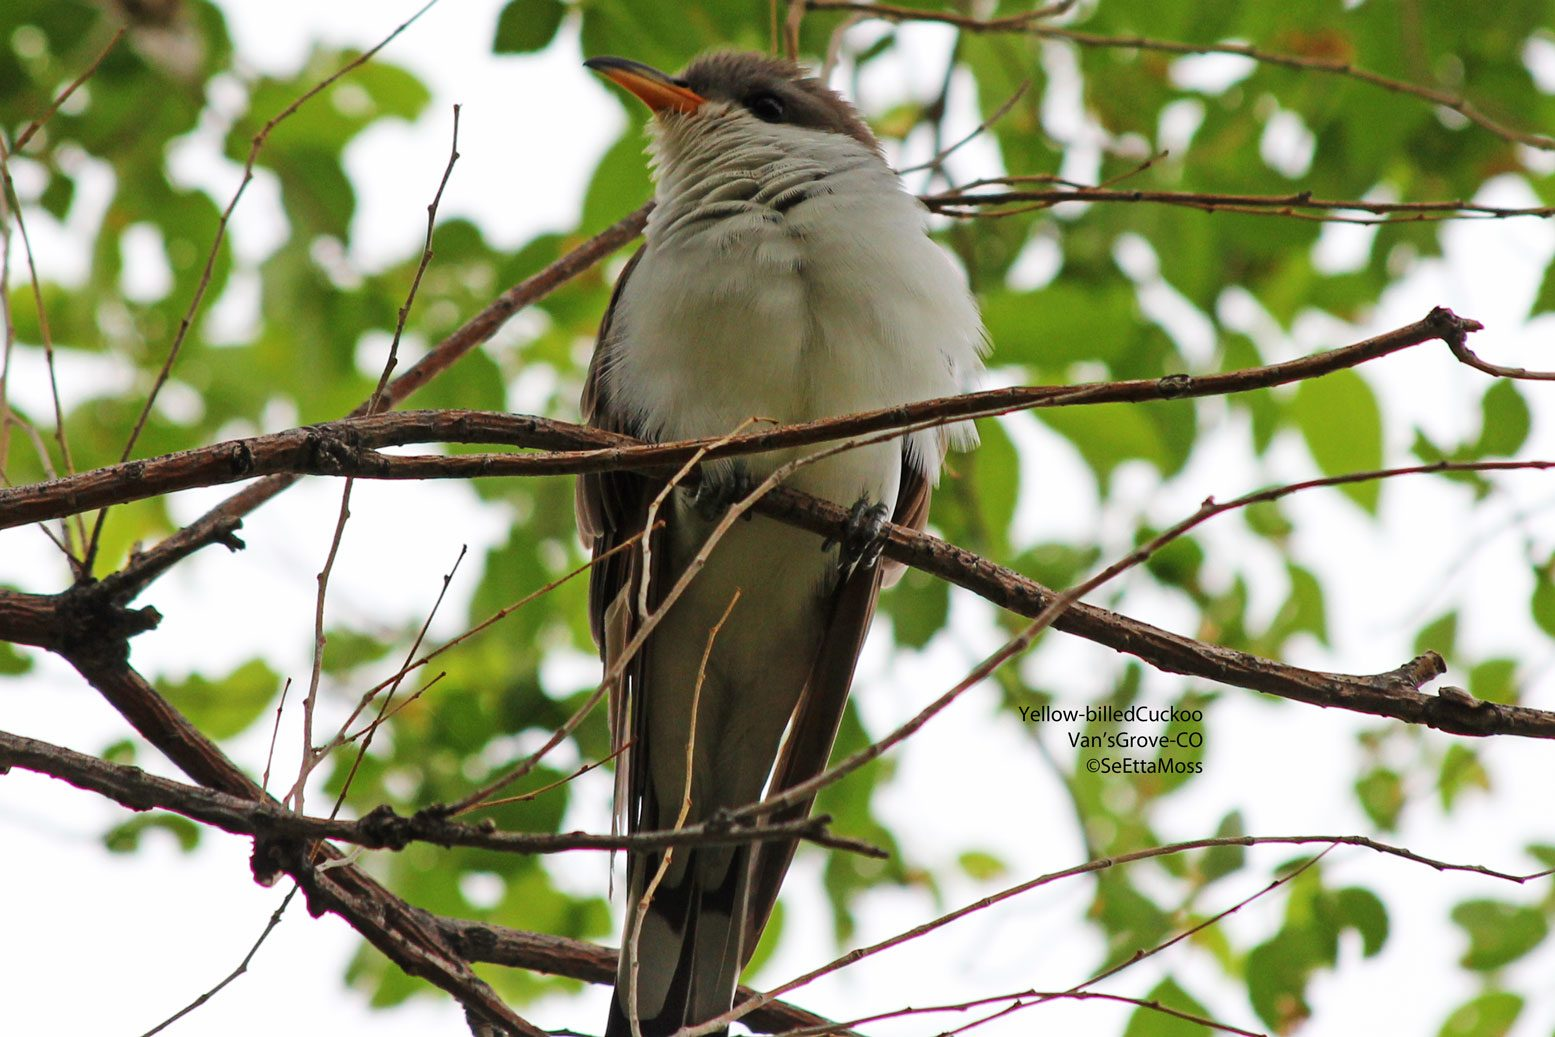 This One Is A Yellow Billed Cuckoo And You Can Tell It Because Aha Has Yellowish Bill Yes Black Cuckoos Have Blackish Bills